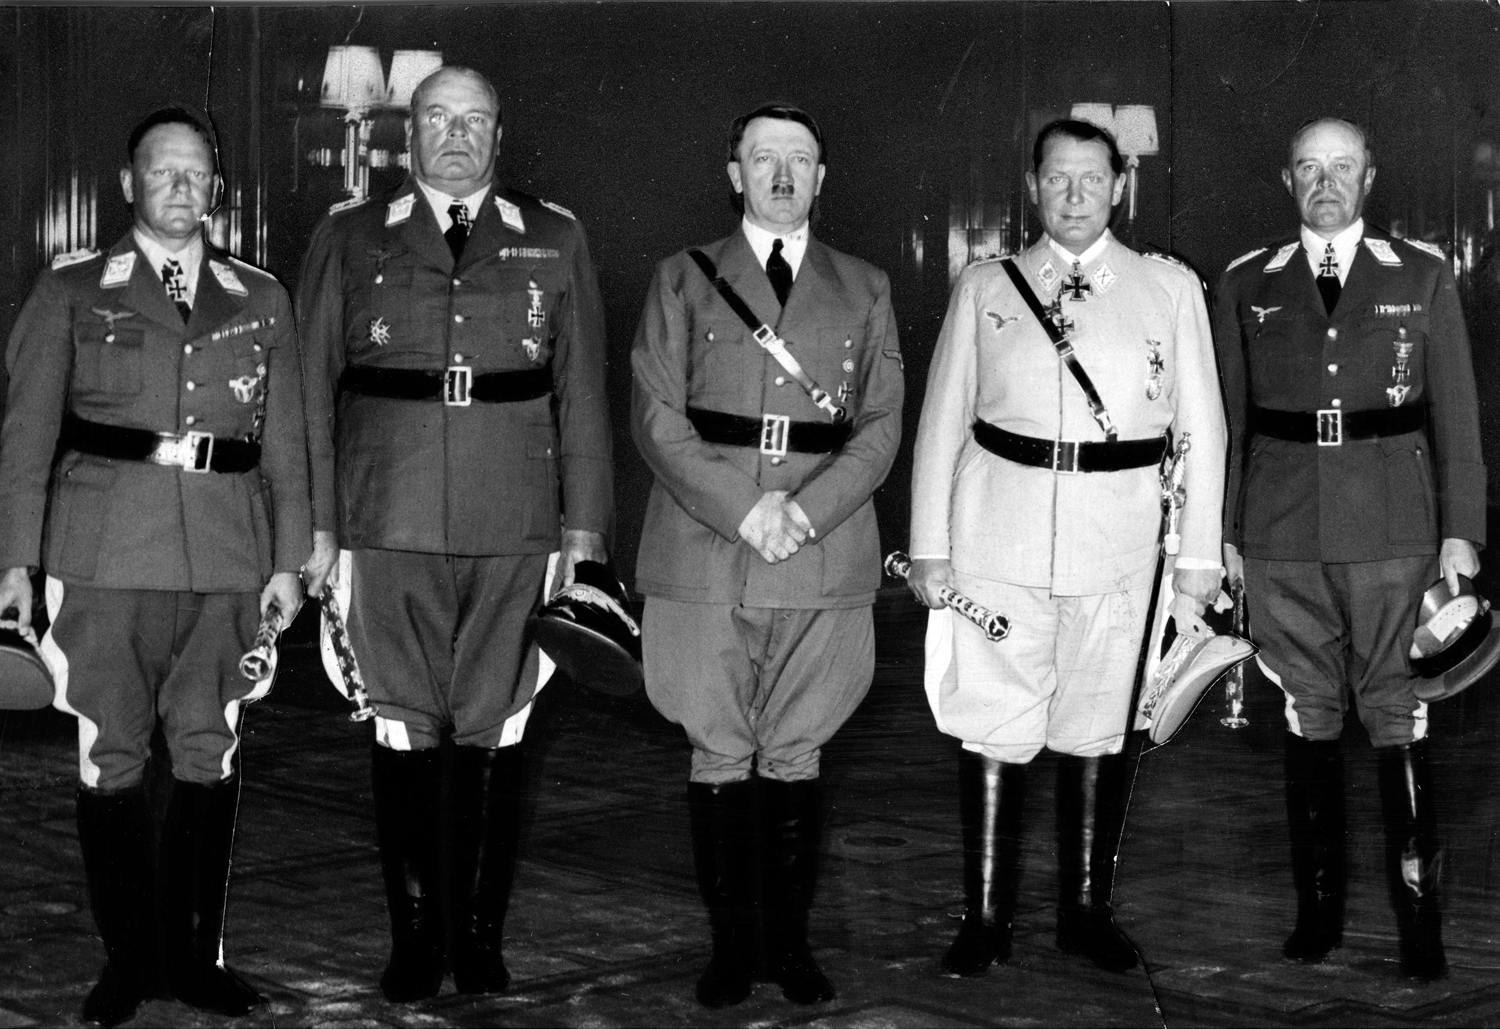 Adolf Hitler posing with the newly appointed field marshalls